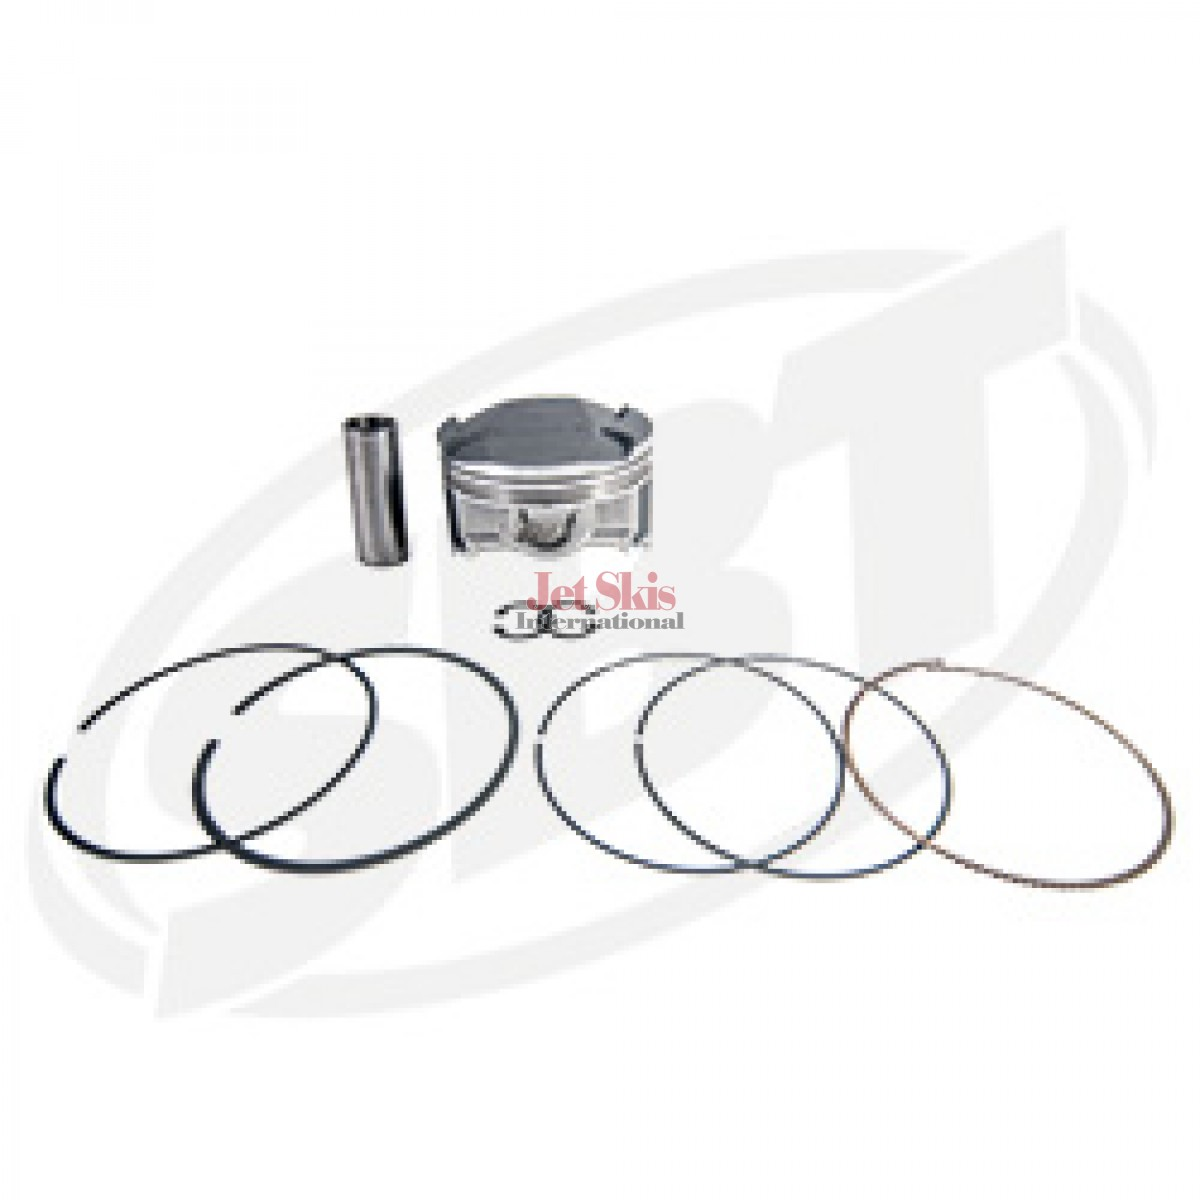 Kawasaki OEM# 13001-3736 Replacement Piston & Ring Set 12F STX 12 F 2003 2004 2005 2006 2007